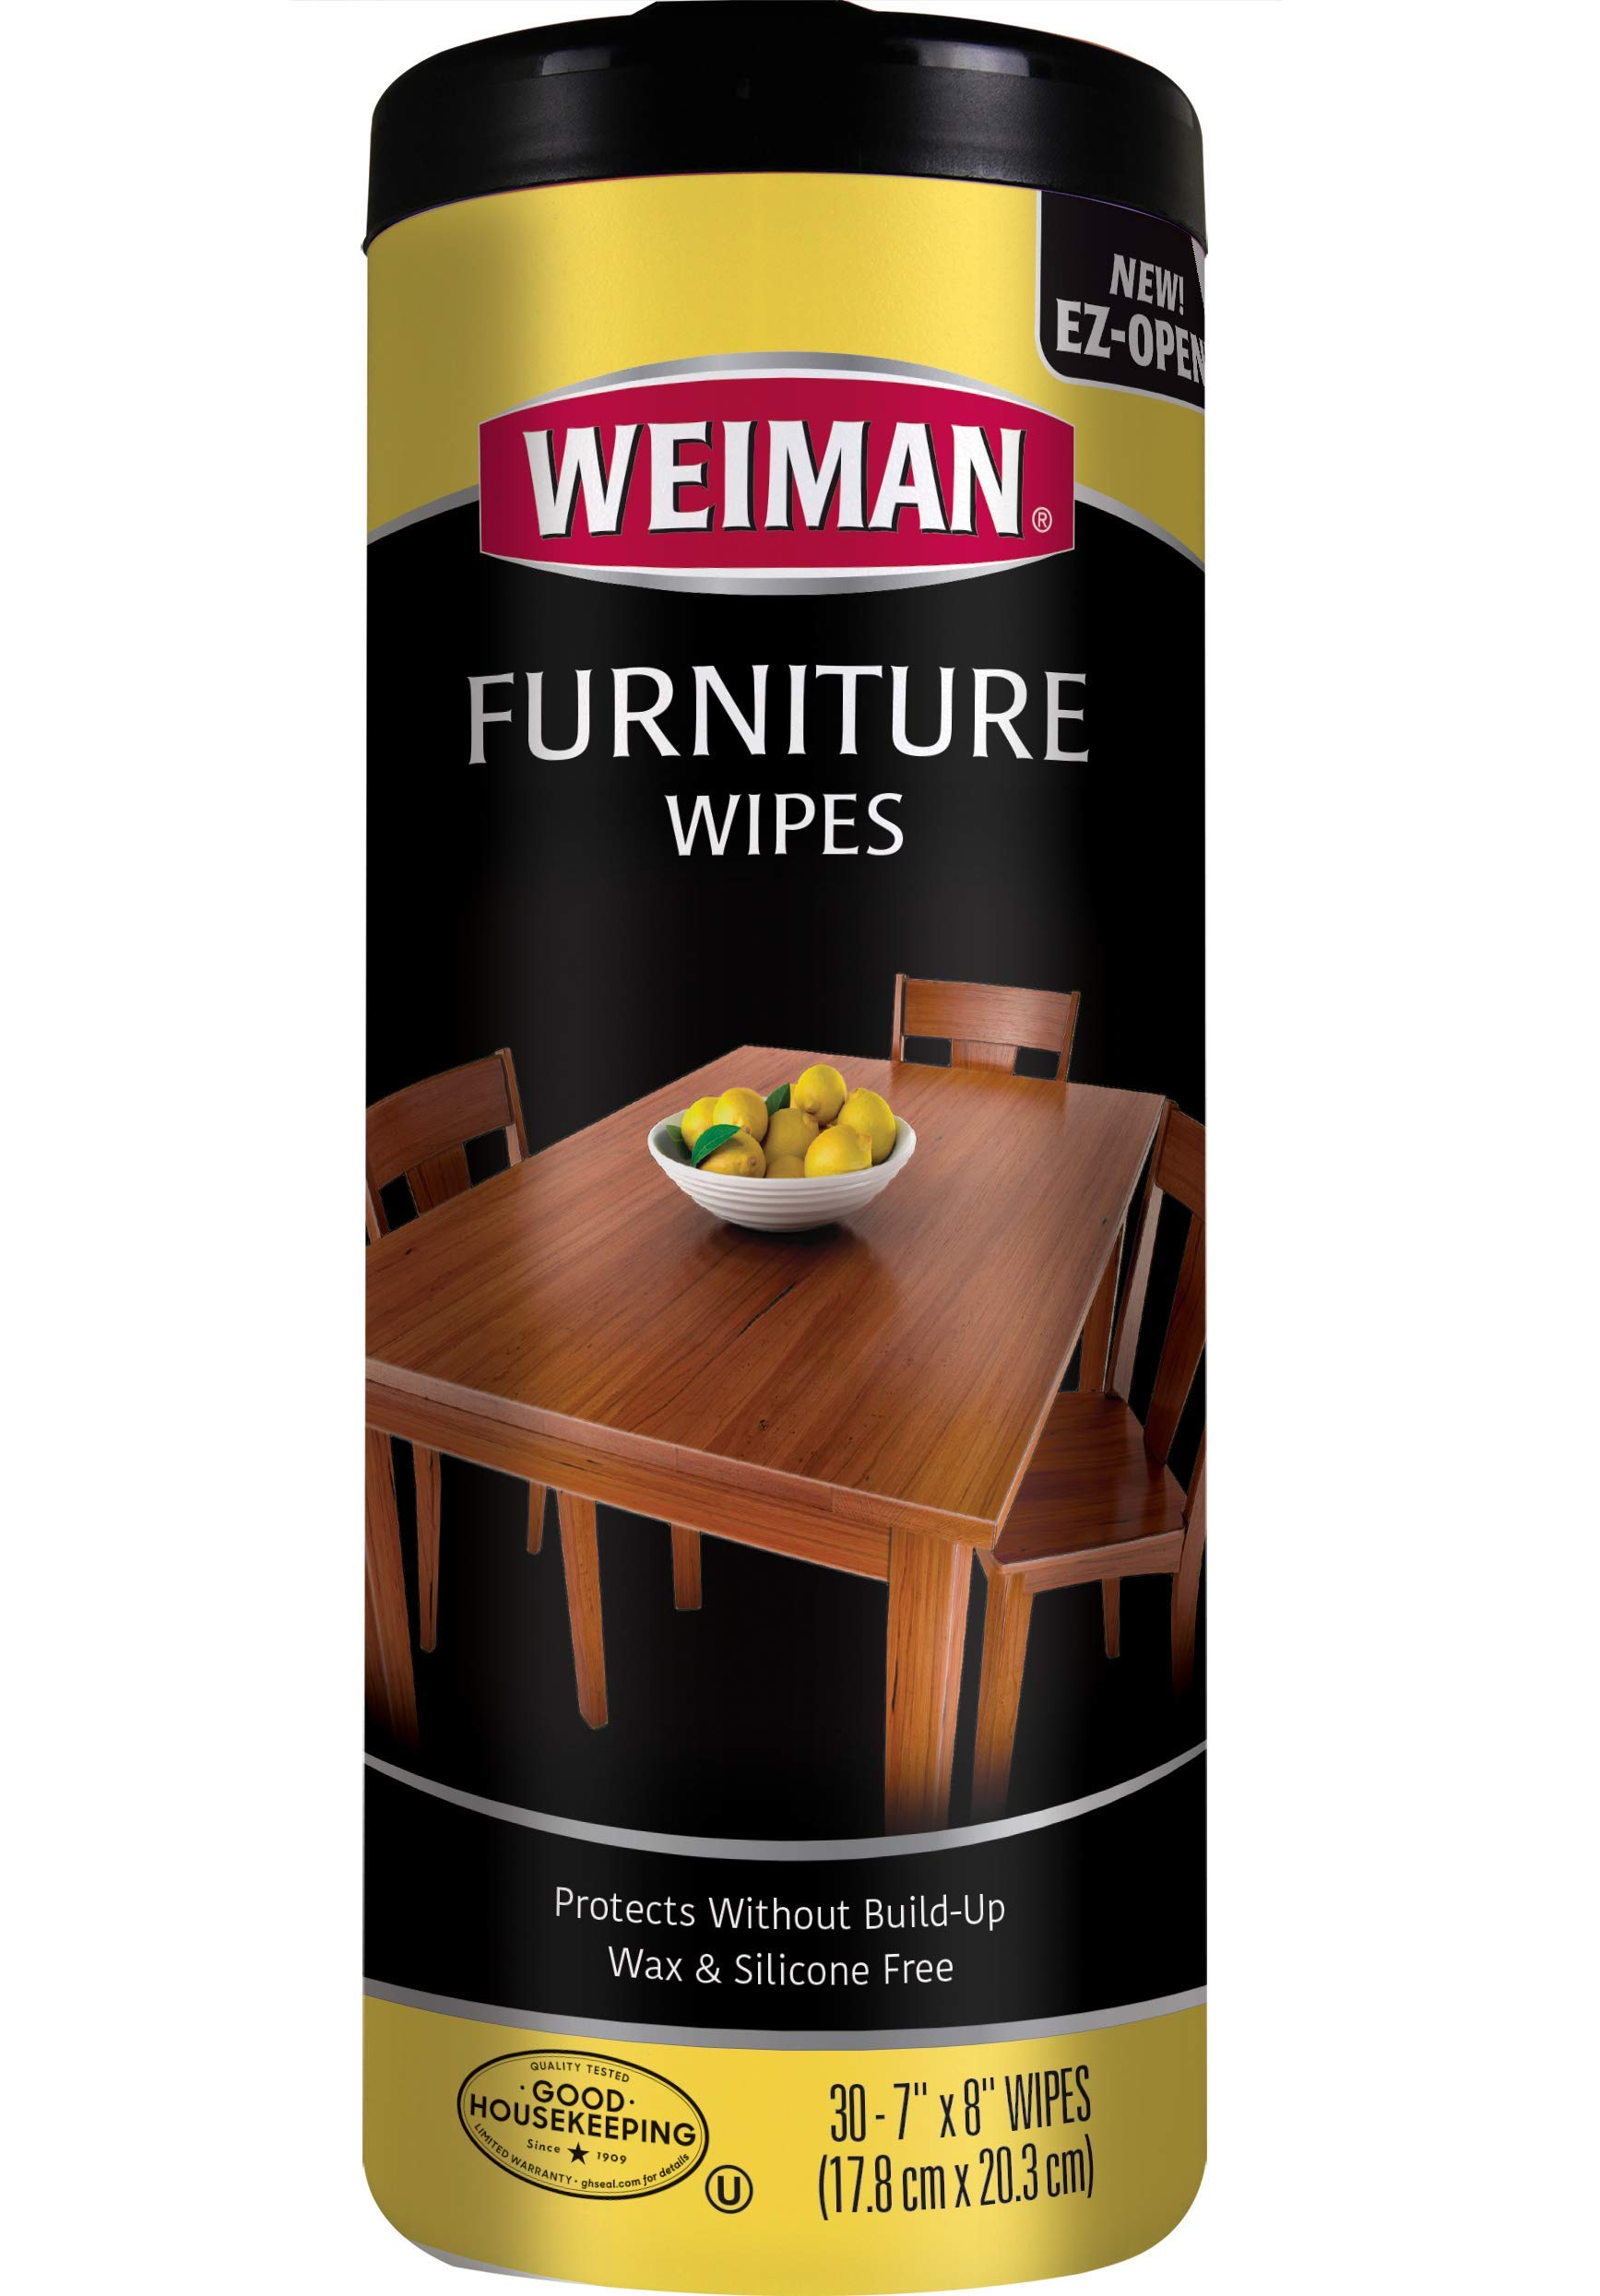 Weiman Furniture Wipes, Beautify & Protect, No Build-Up, Contains UVX-15, Pleasant Scent, Surface Safe – 30 count